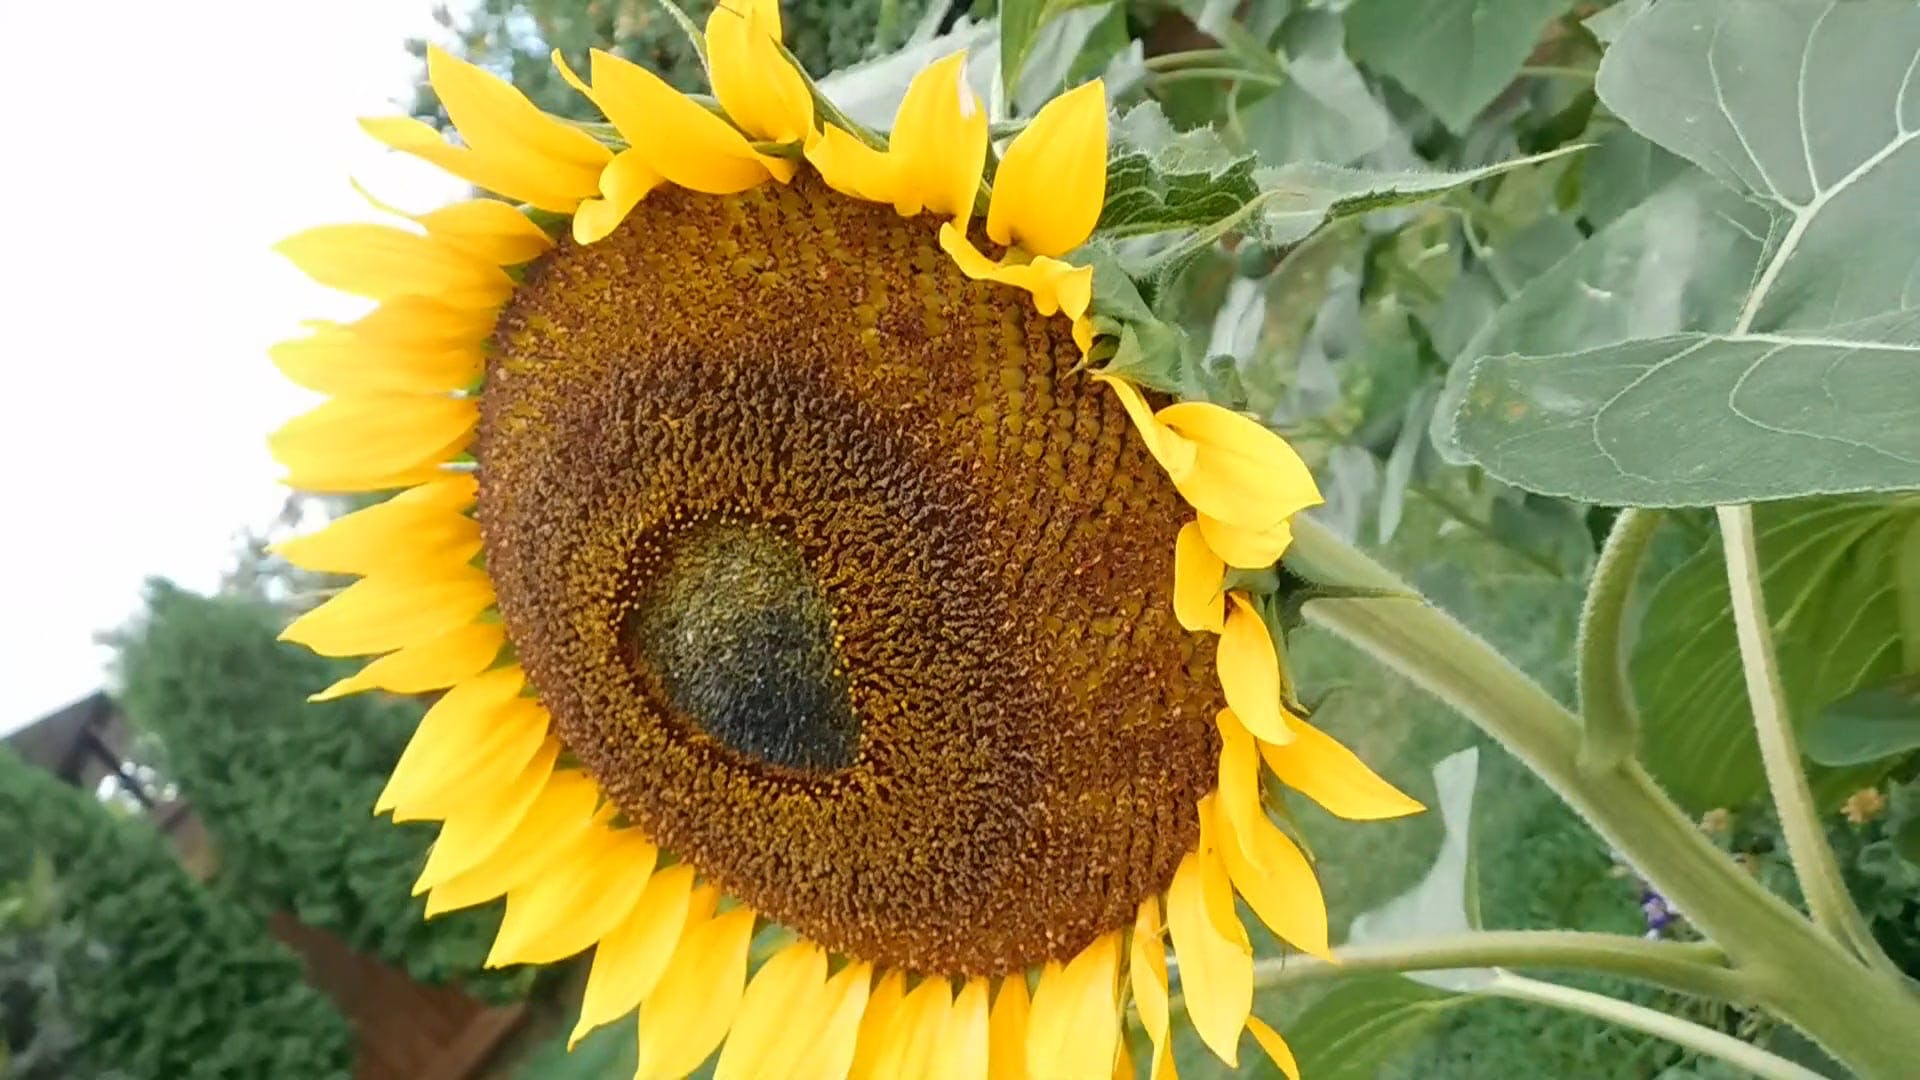 Sunflower With An Angle Shot